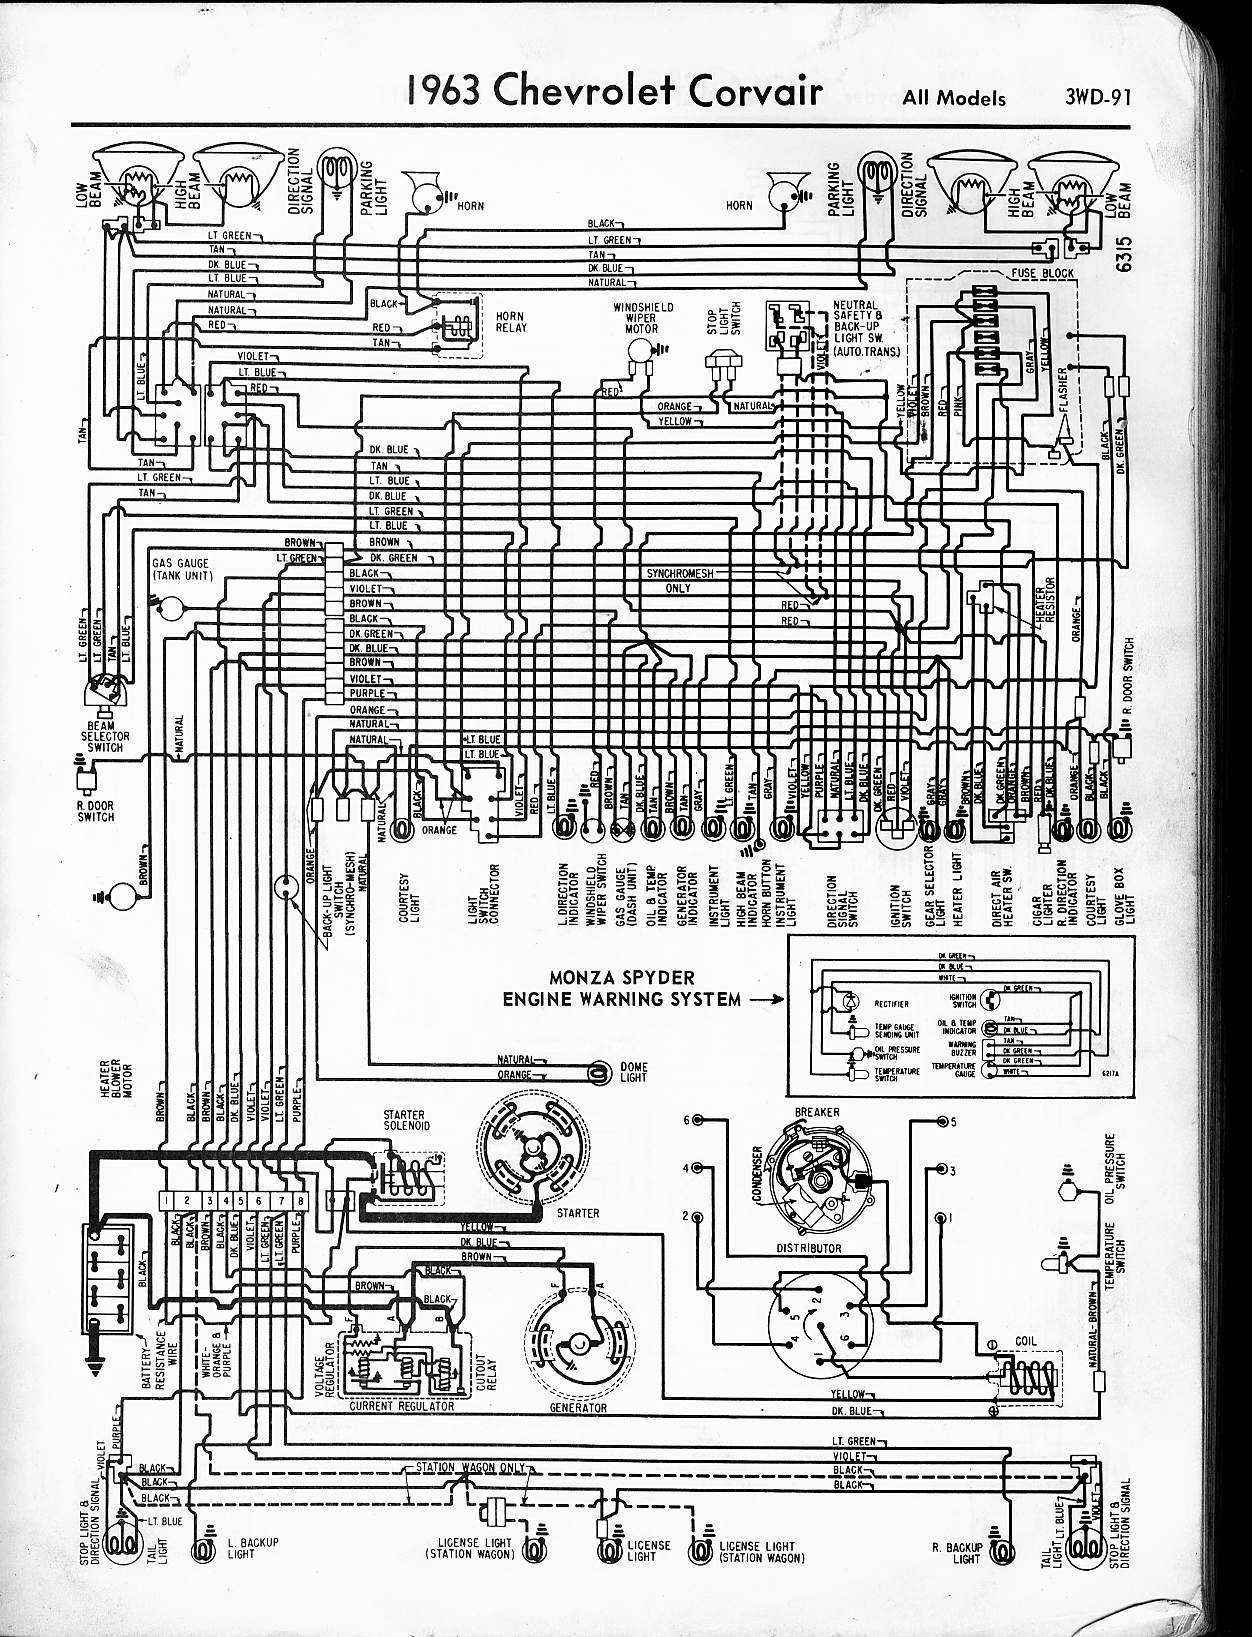 57 - 65 Chevy Wiring Diagrams  C Wiring Harness on safety harness, radio harness, maxi-seal harness, amp bypass harness, suspension harness, obd0 to obd1 conversion harness, fall protection harness, pony harness, nakamichi harness, engine harness, oxygen sensor extension harness, battery harness, swing harness, pet harness, dog harness, cable harness, alpine stereo harness, electrical harness,